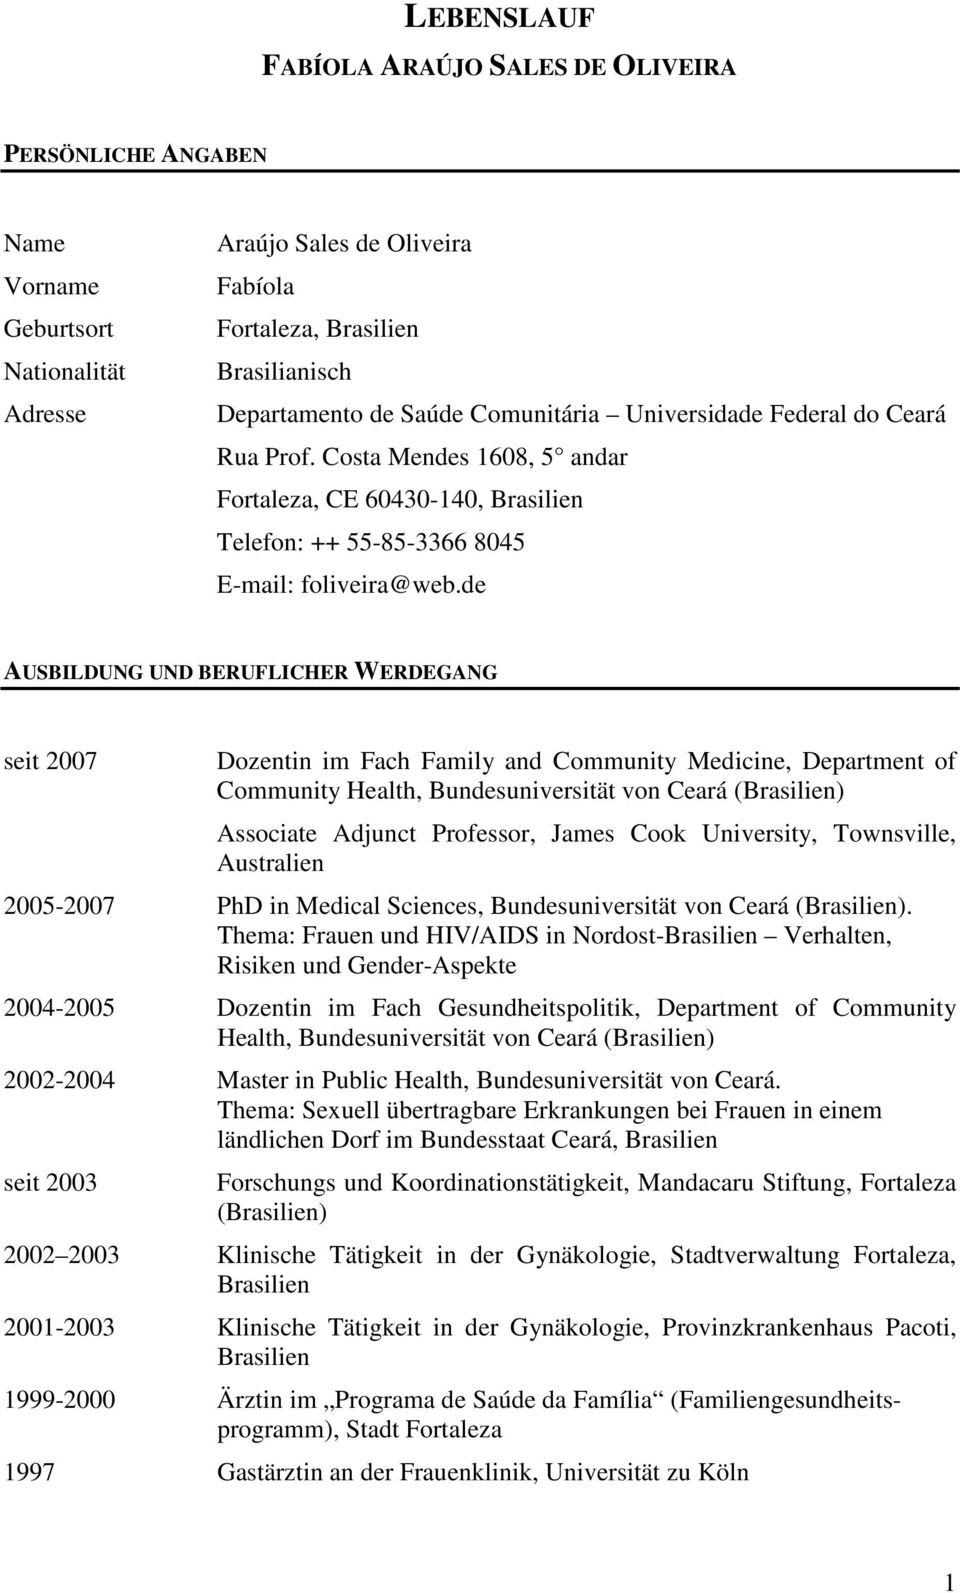 de AUSBILDUNG UND BERUFLICHER WERDEGANG seit 2007 Dozentin im Fach Family and Community Medicine, Department of Community Health, Bundesuniversität von Ceará (Brasilien) Associate Adjunct Professor,